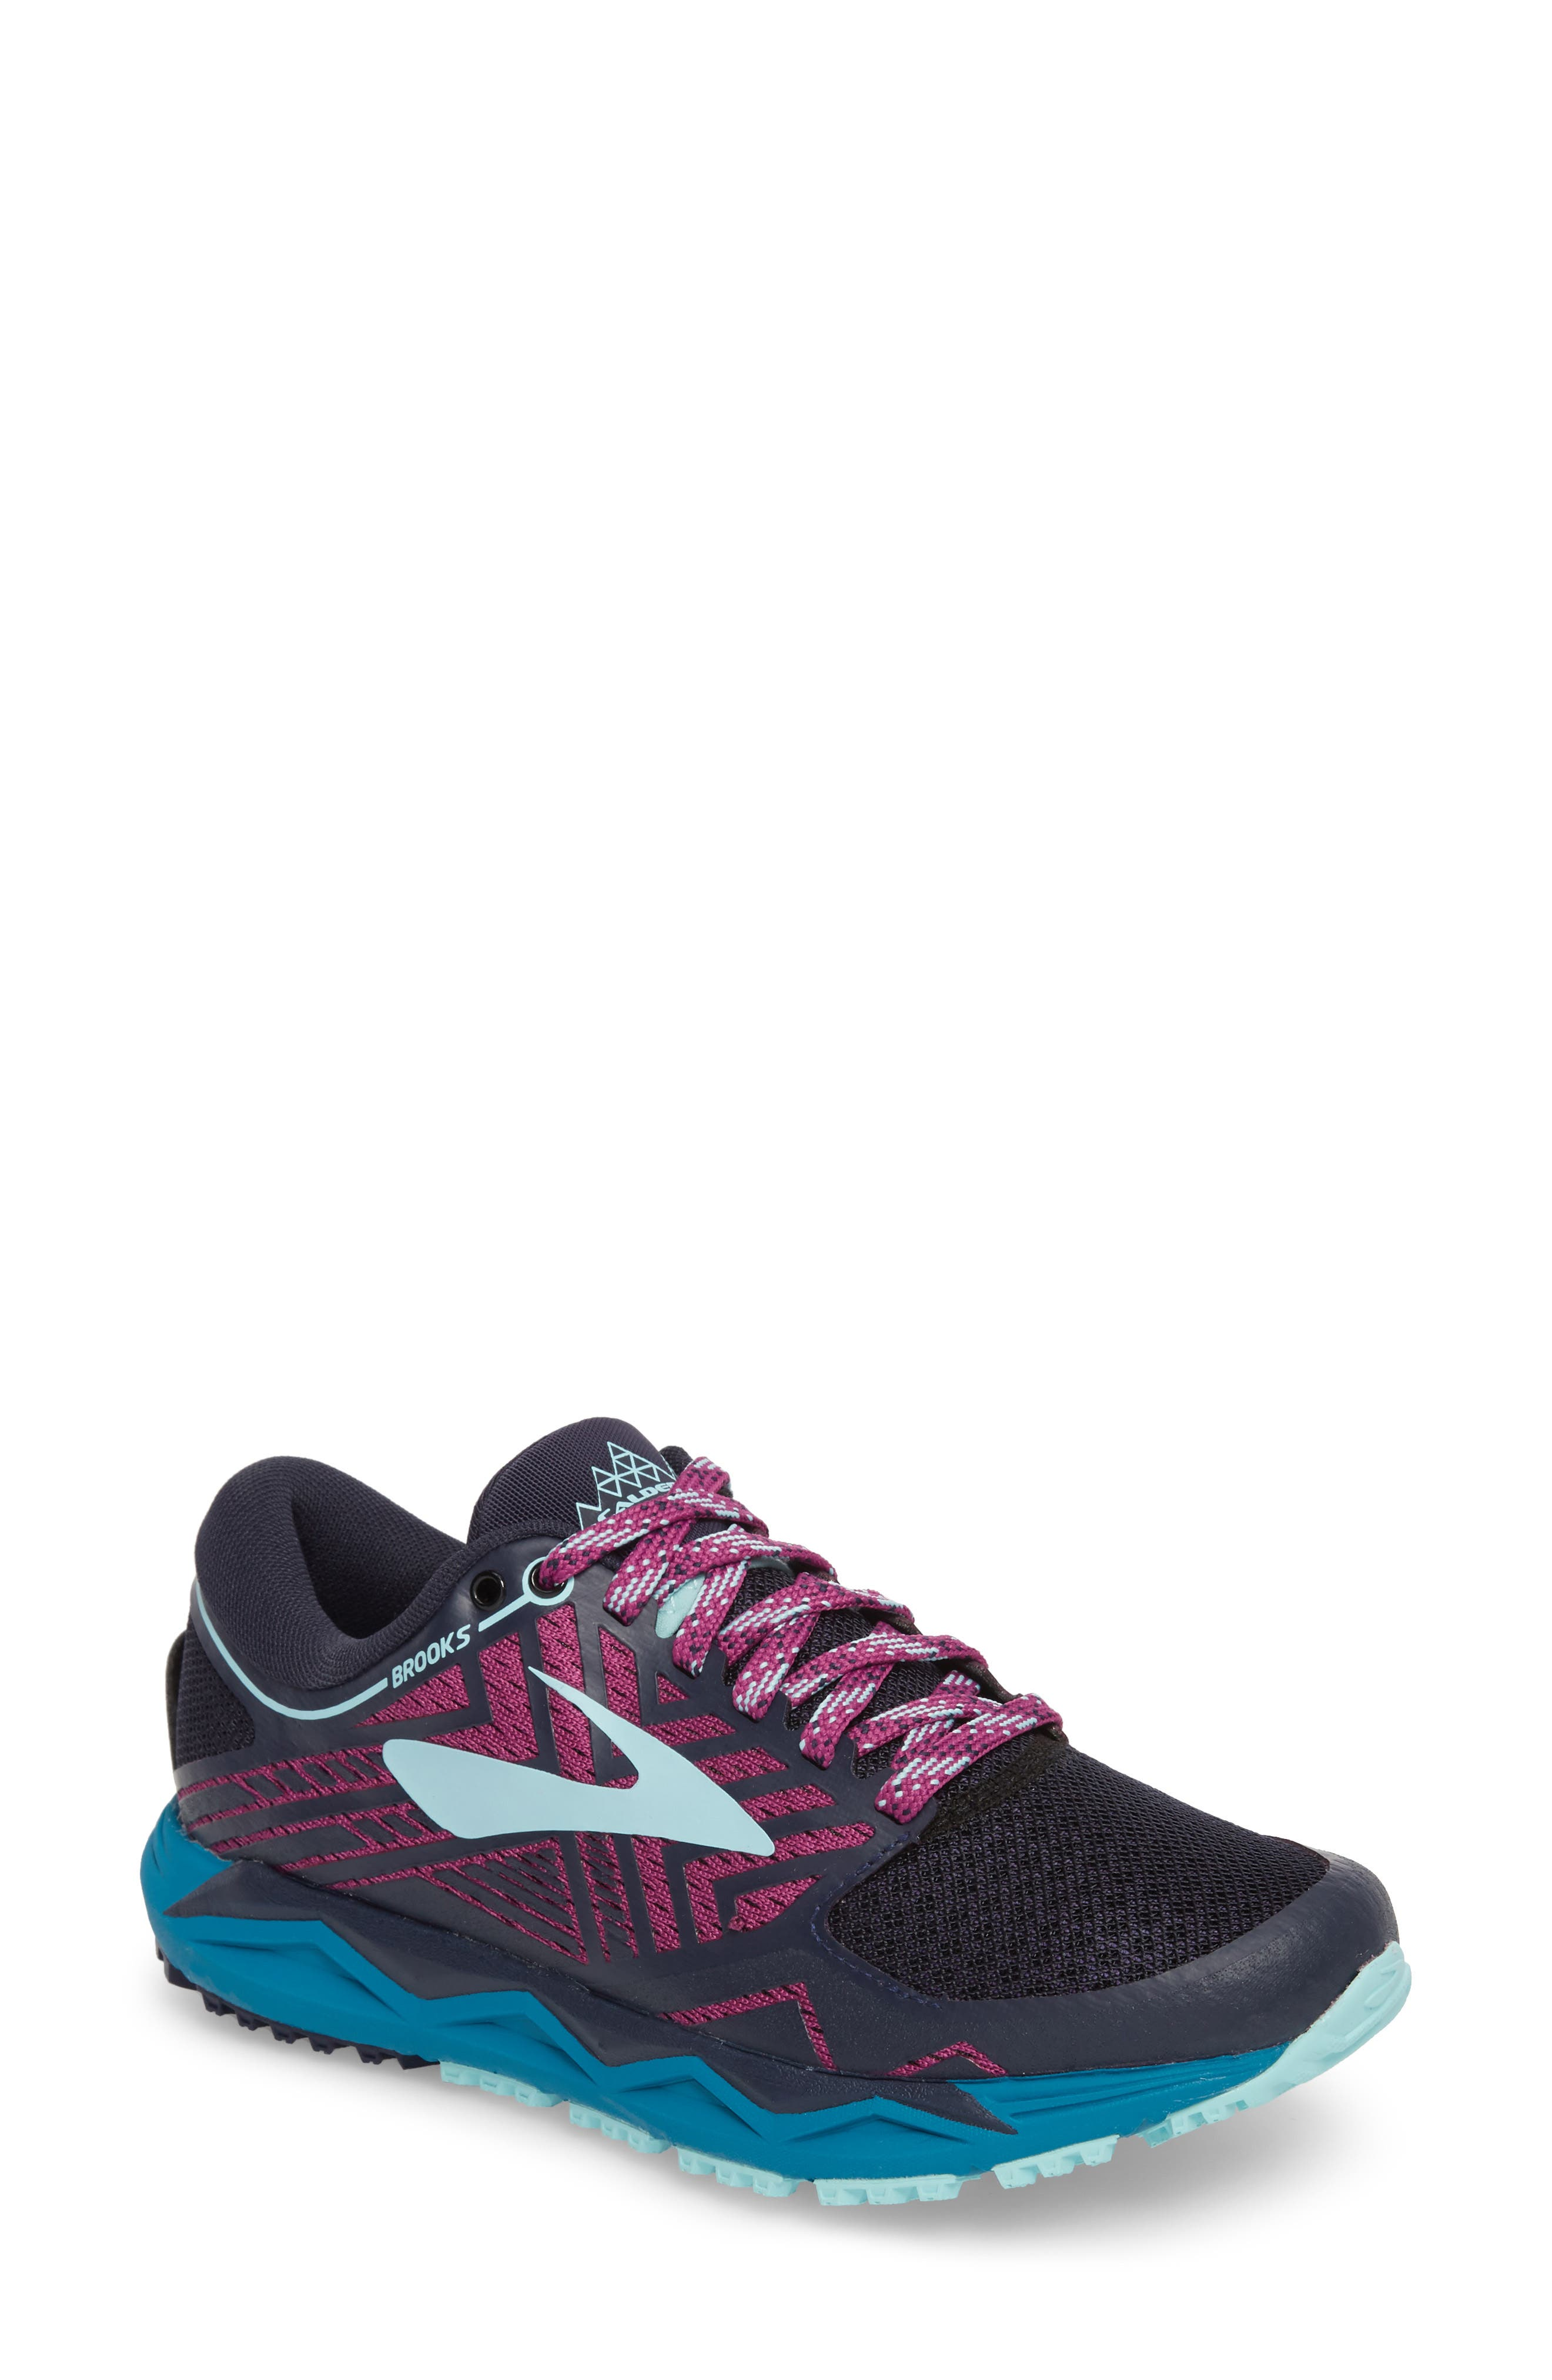 Caldera 2 Trail Running Shoe,                         Main,                         color, NAVY/ PLUM/ ICE BLUE